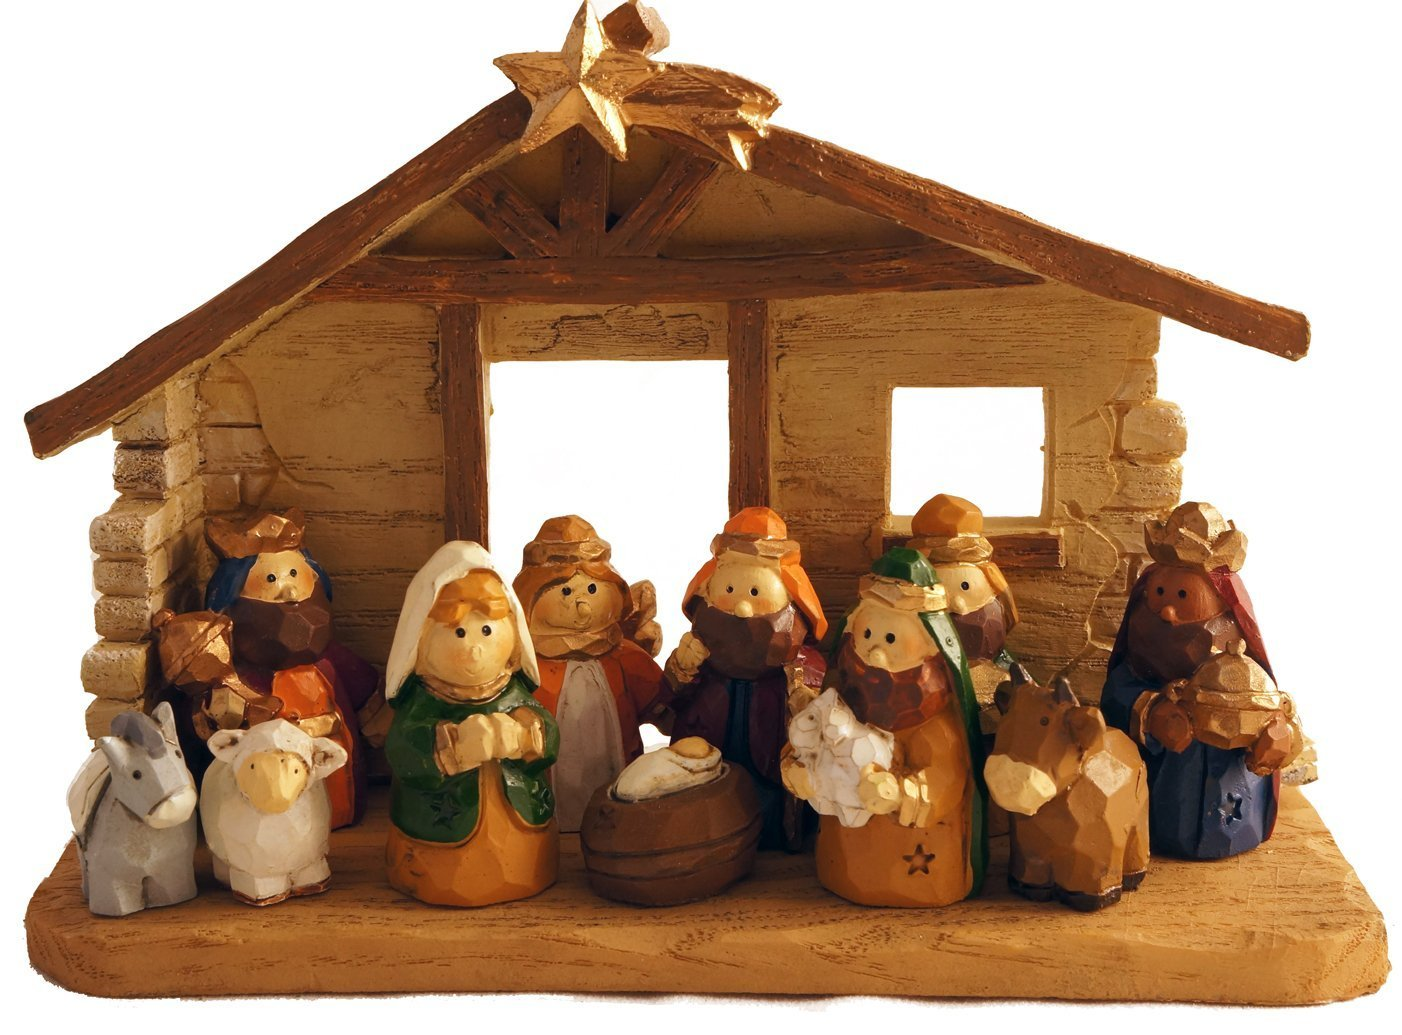 Miniature Kids Christmas Nativity Scene with Creche, Set of 12 Rearrangeable Figures One Holiday Lane No Model